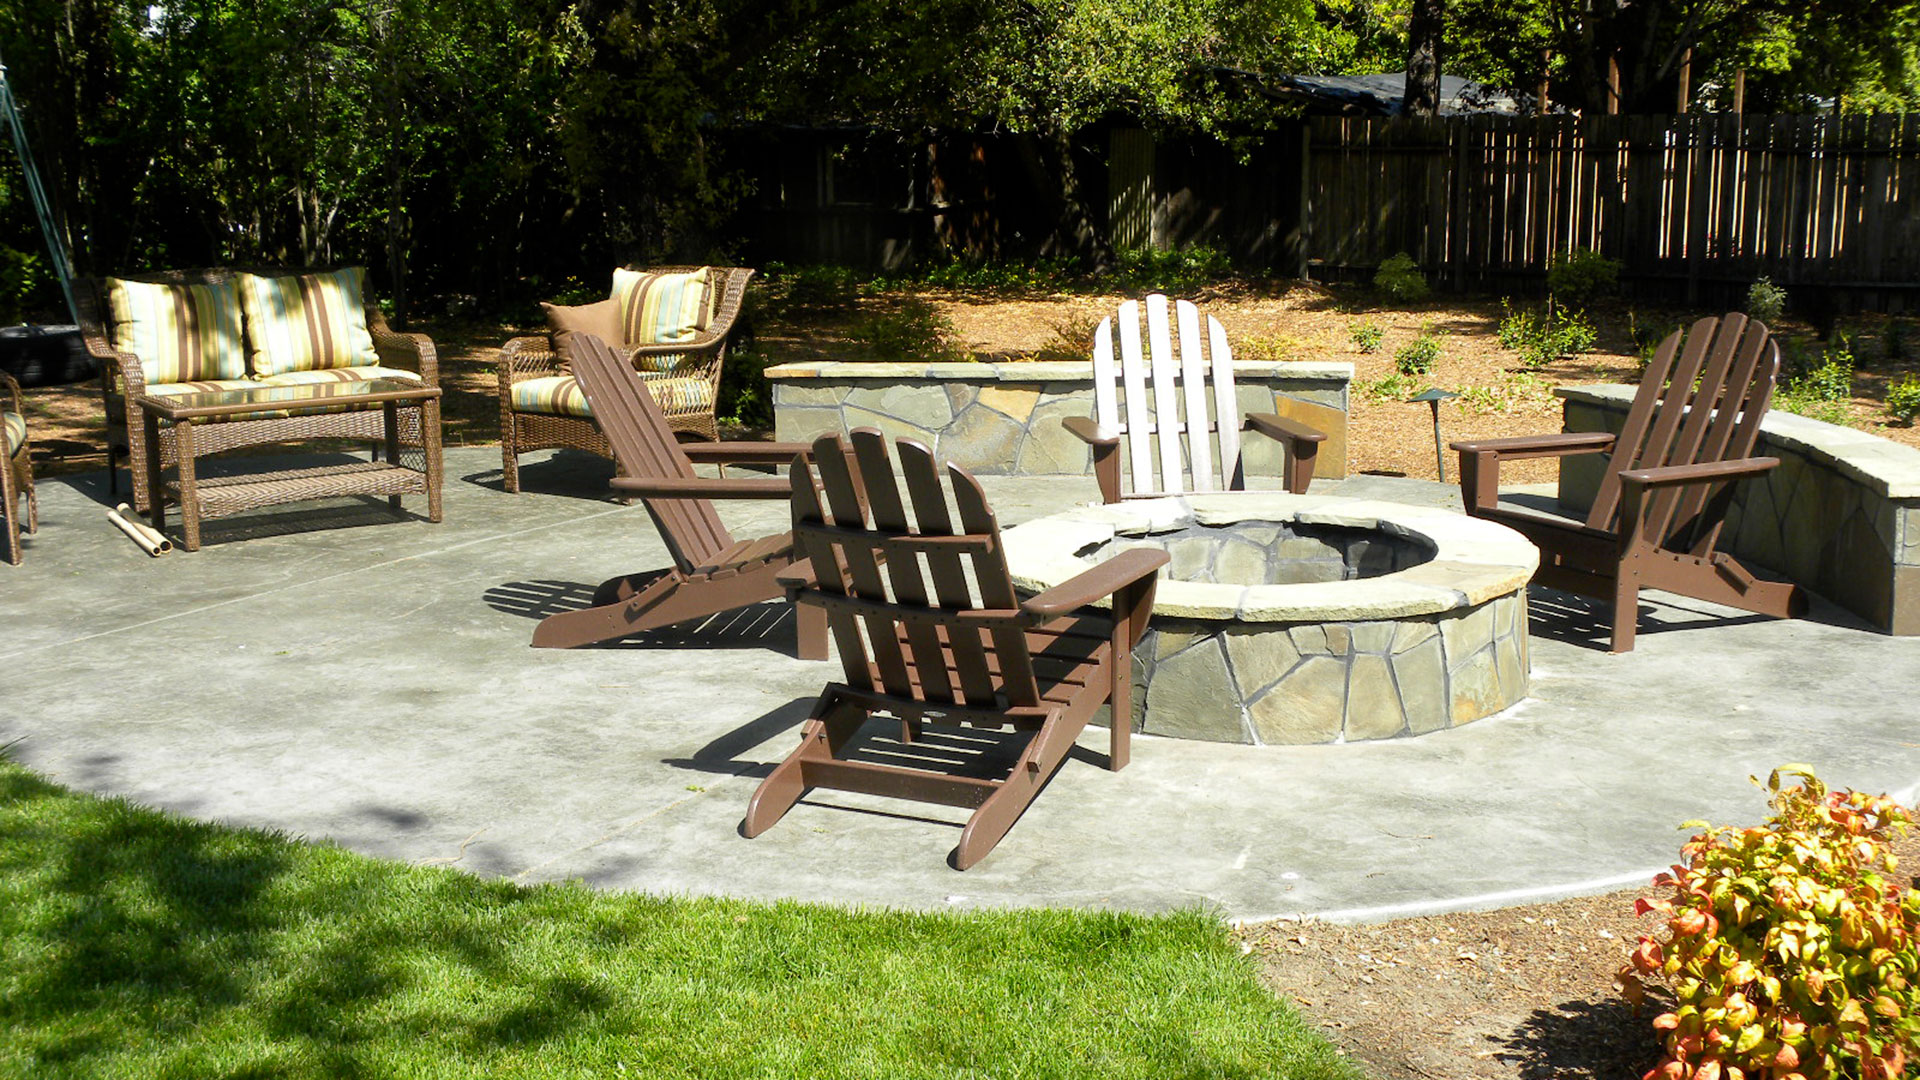 stamped concrete patio featuring